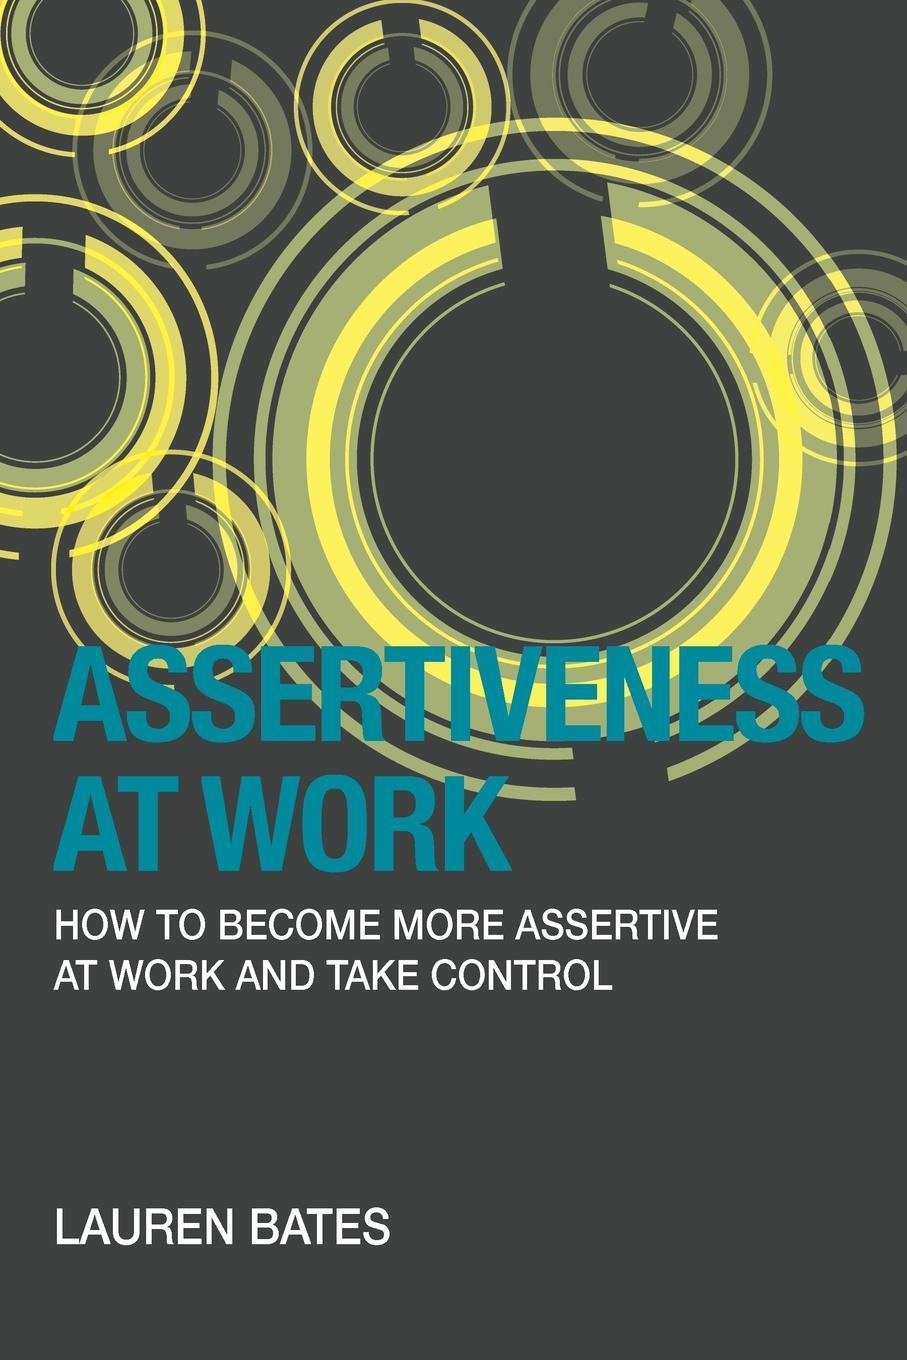 Lauren Bates Assertiveness at Work How to Become More Assertive at Work and Take Control смеситель однорычажный для душа grohe eurostyle new 33635003